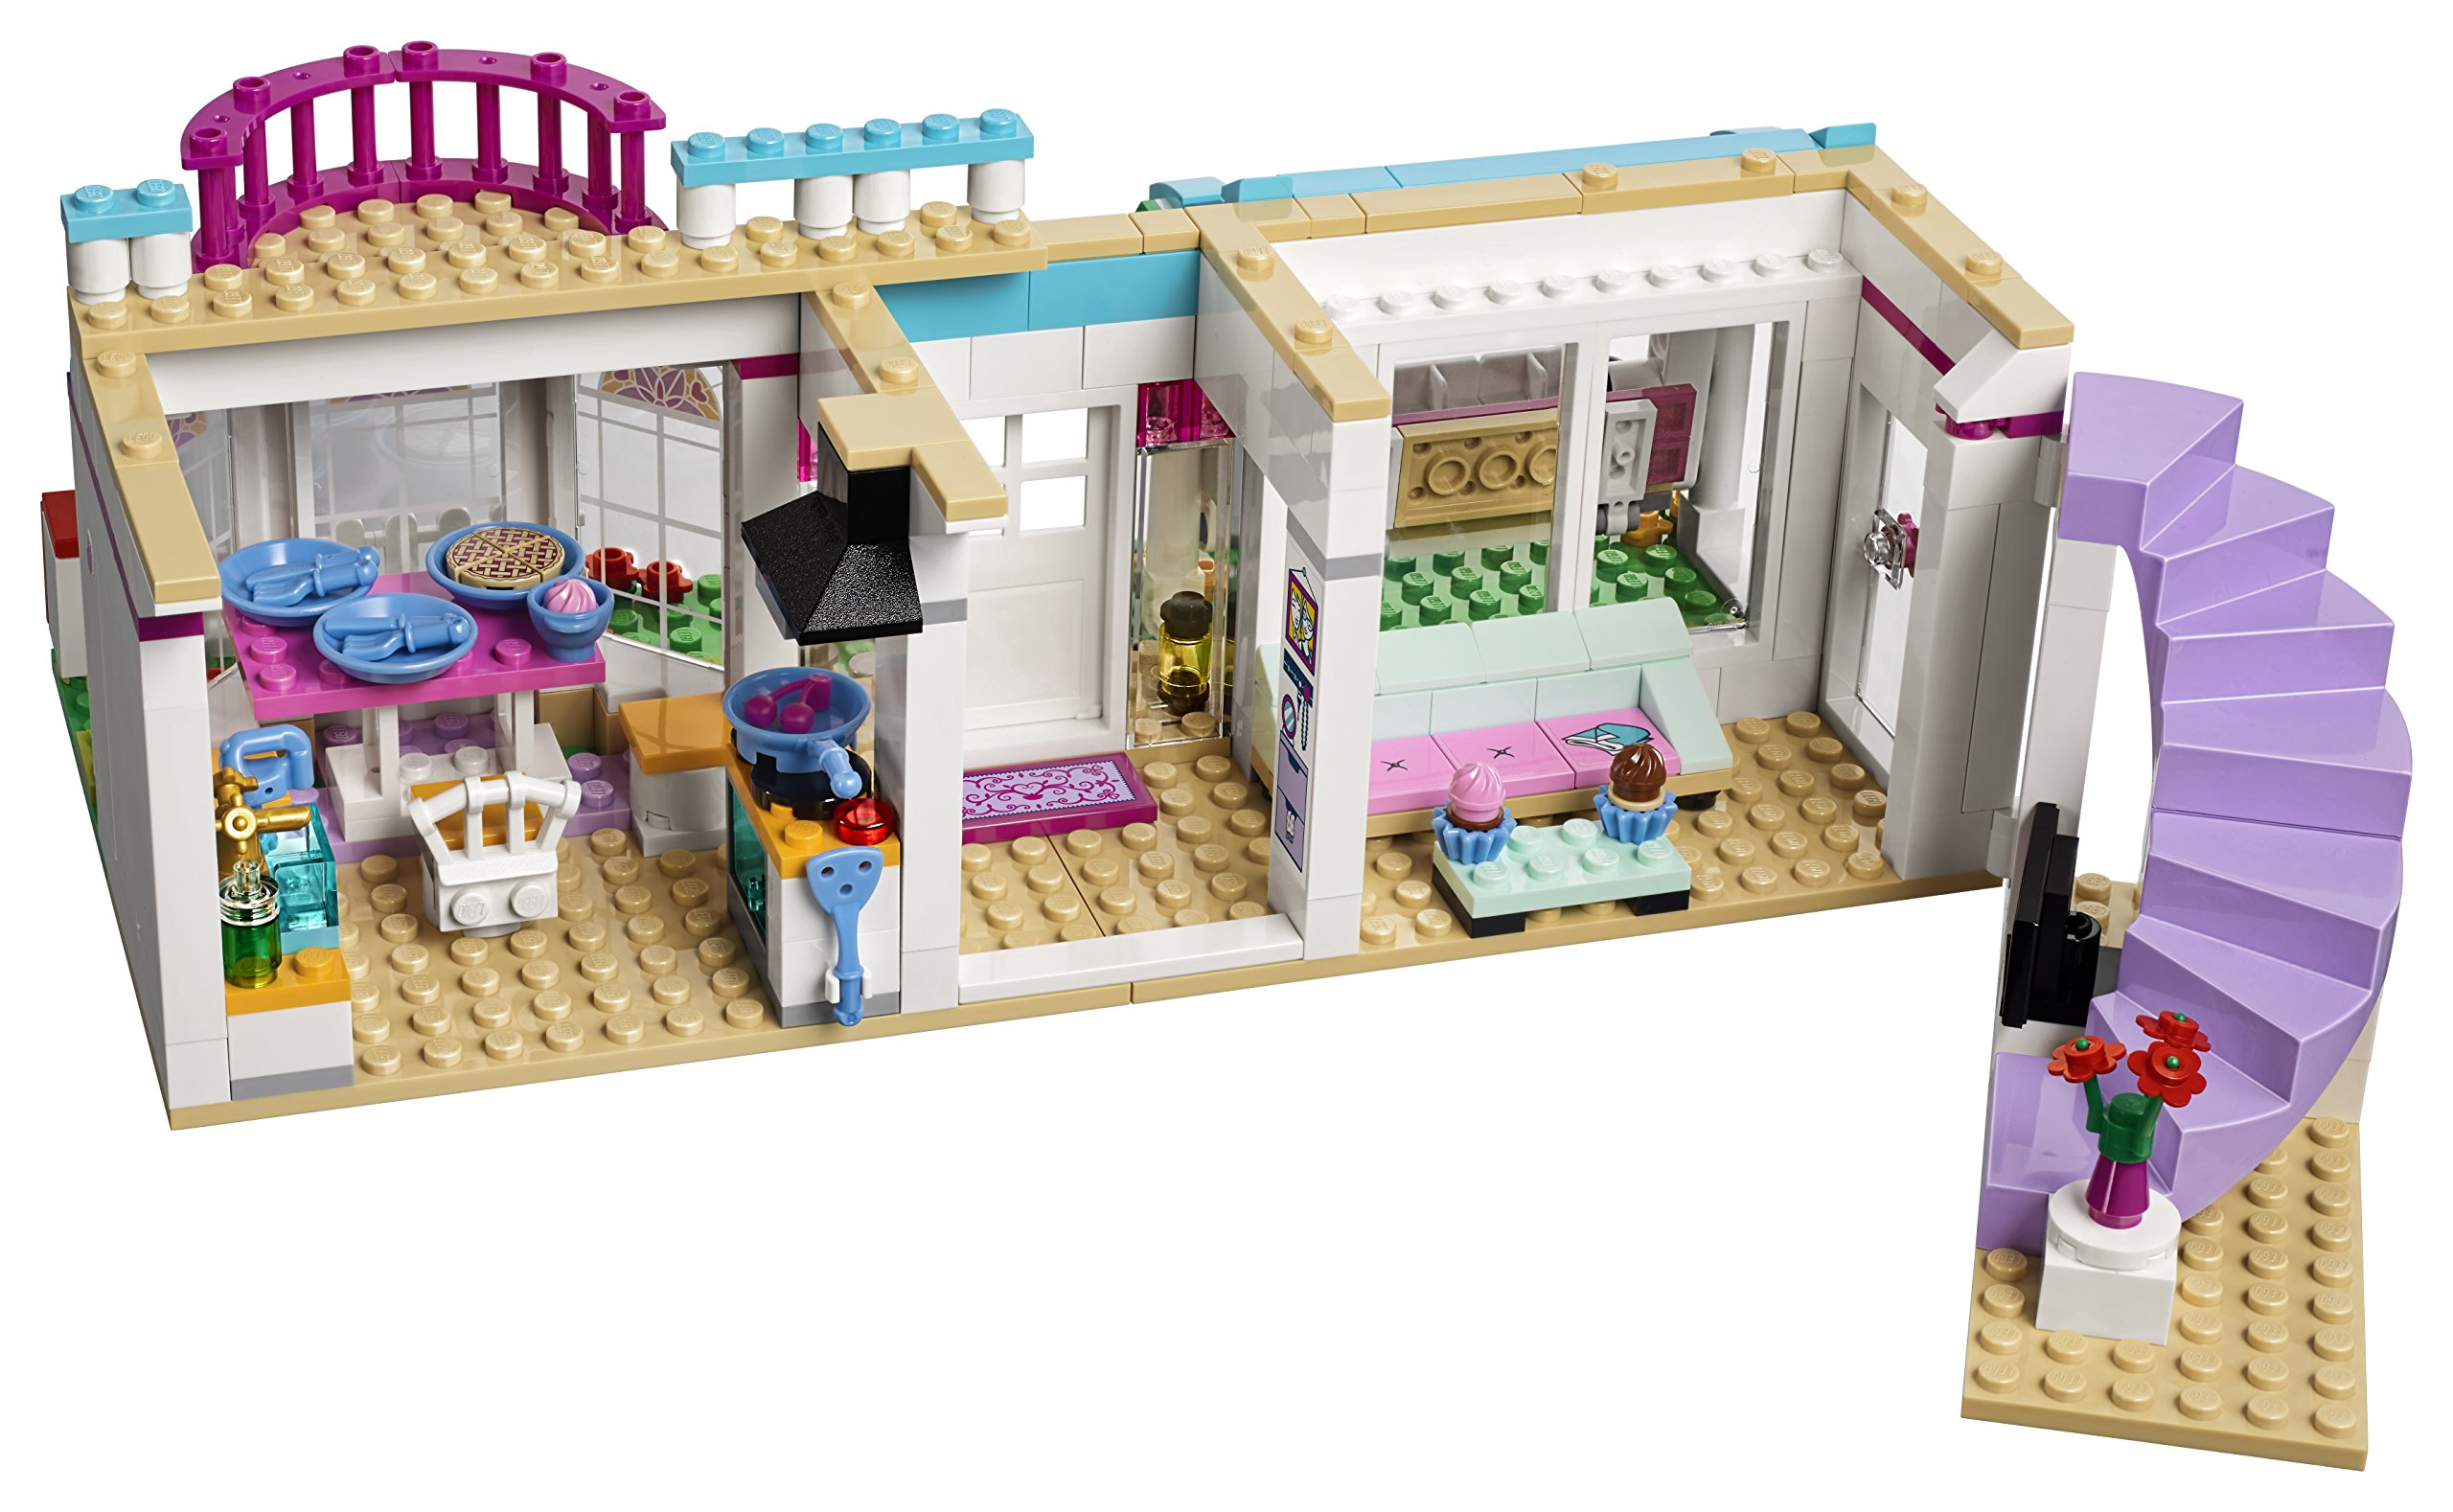 LEGO Friends Stephanies House Toy for 6 Year Olds